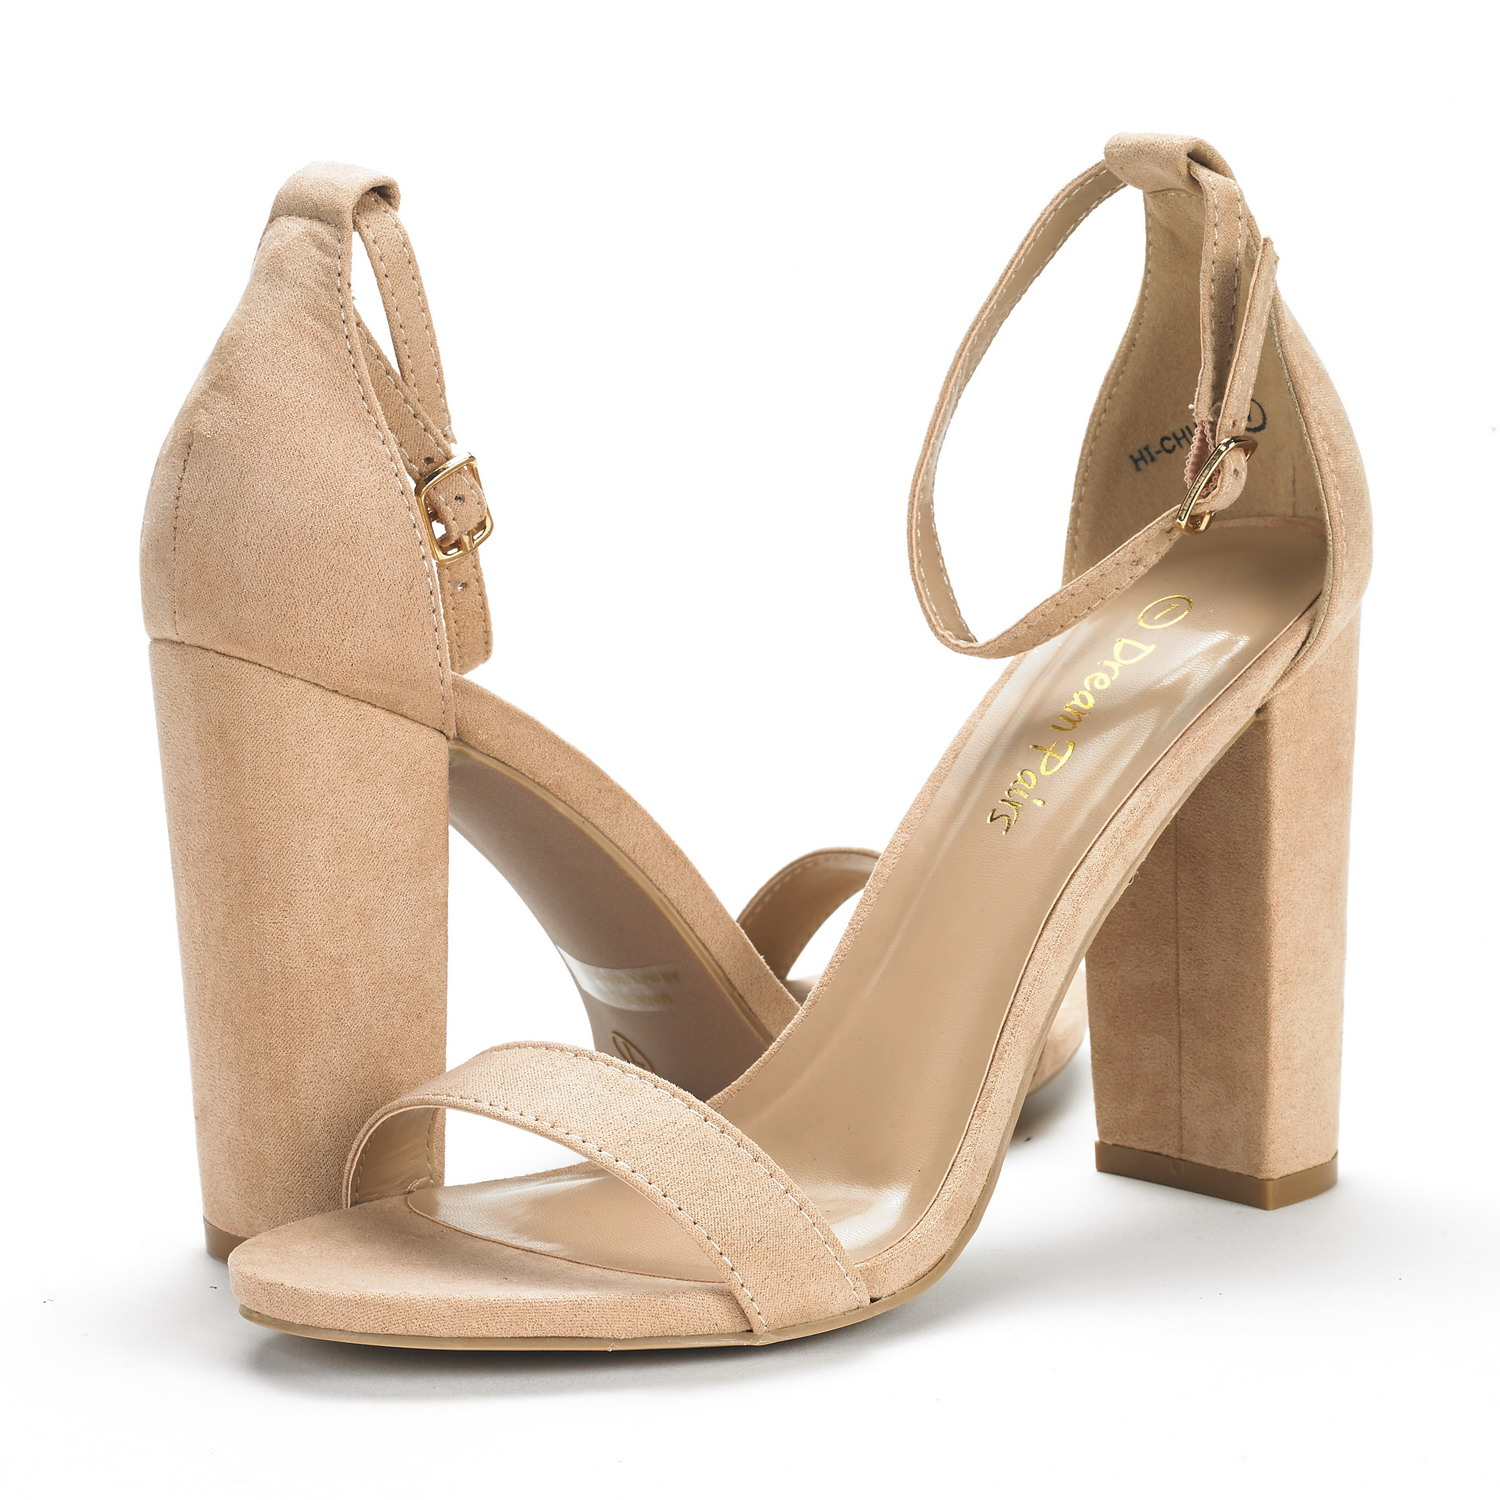 Details about DREAM PAIRS Women High Chunky Heel Ankle Strap Wedding Party Pumps Sandals 5 11